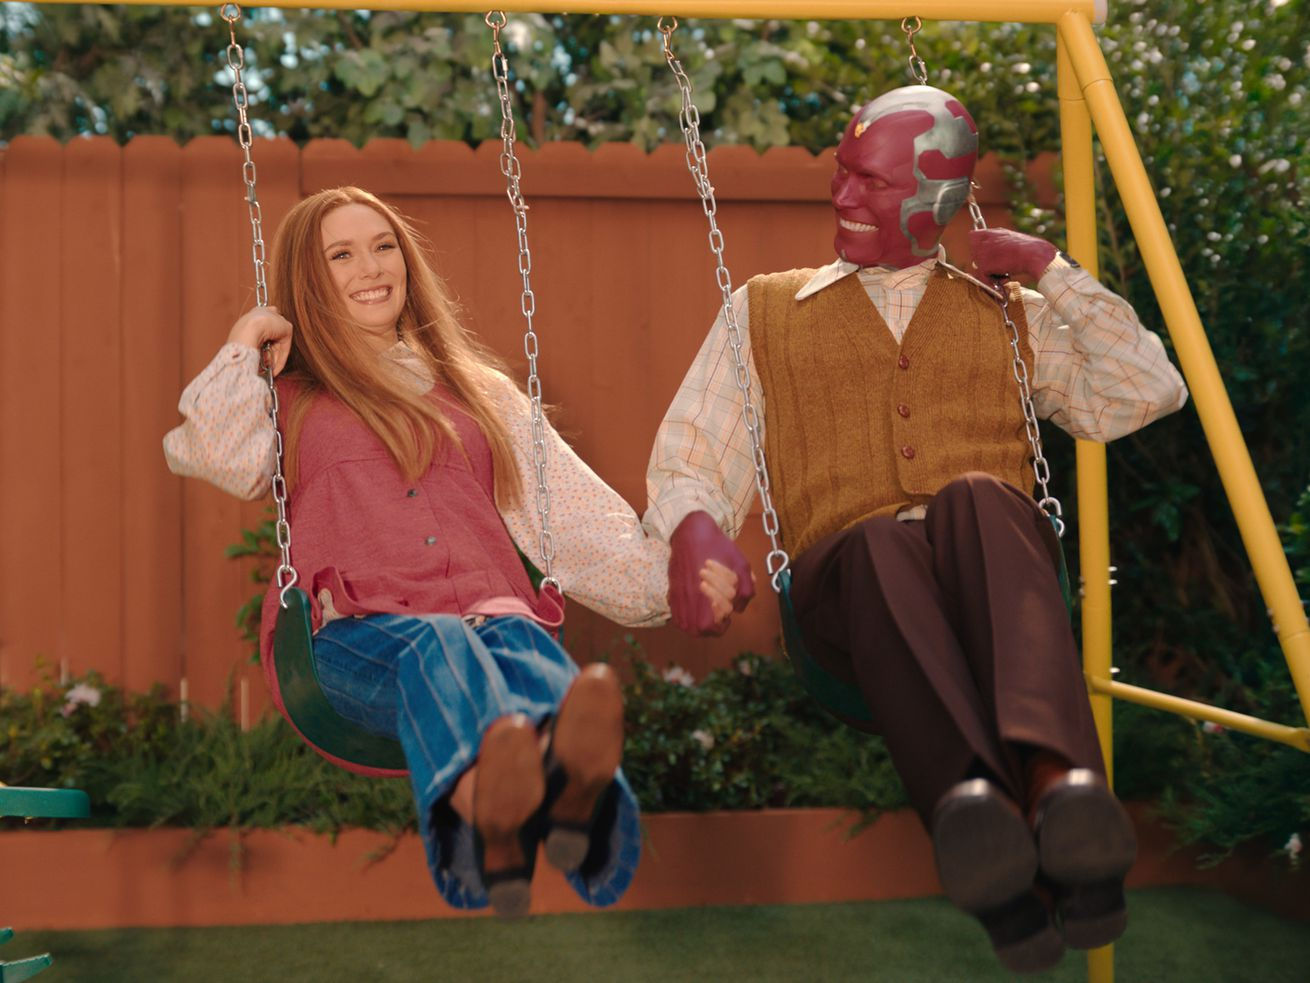 Wanda and Vision hold hands while swinging on a swing set.